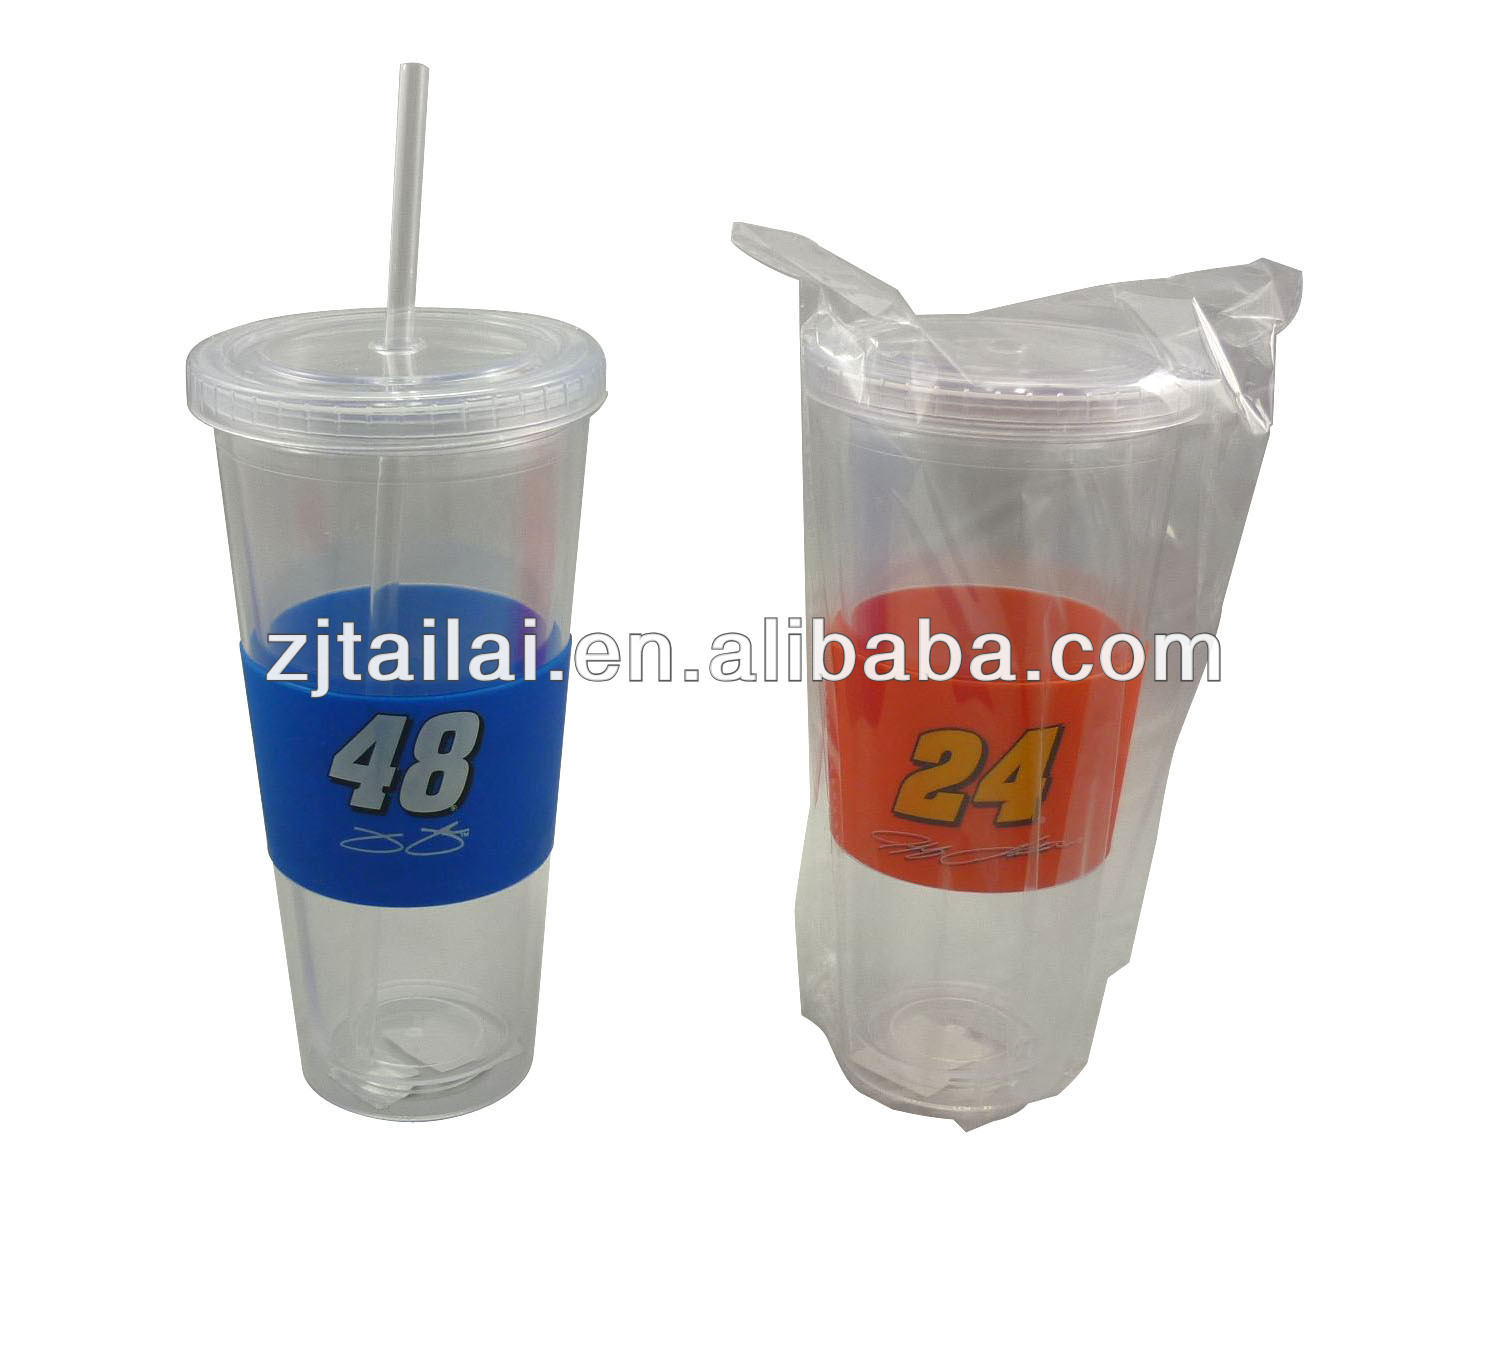 16 OZ double wall plastic tumbler with matching textured sillicone grip